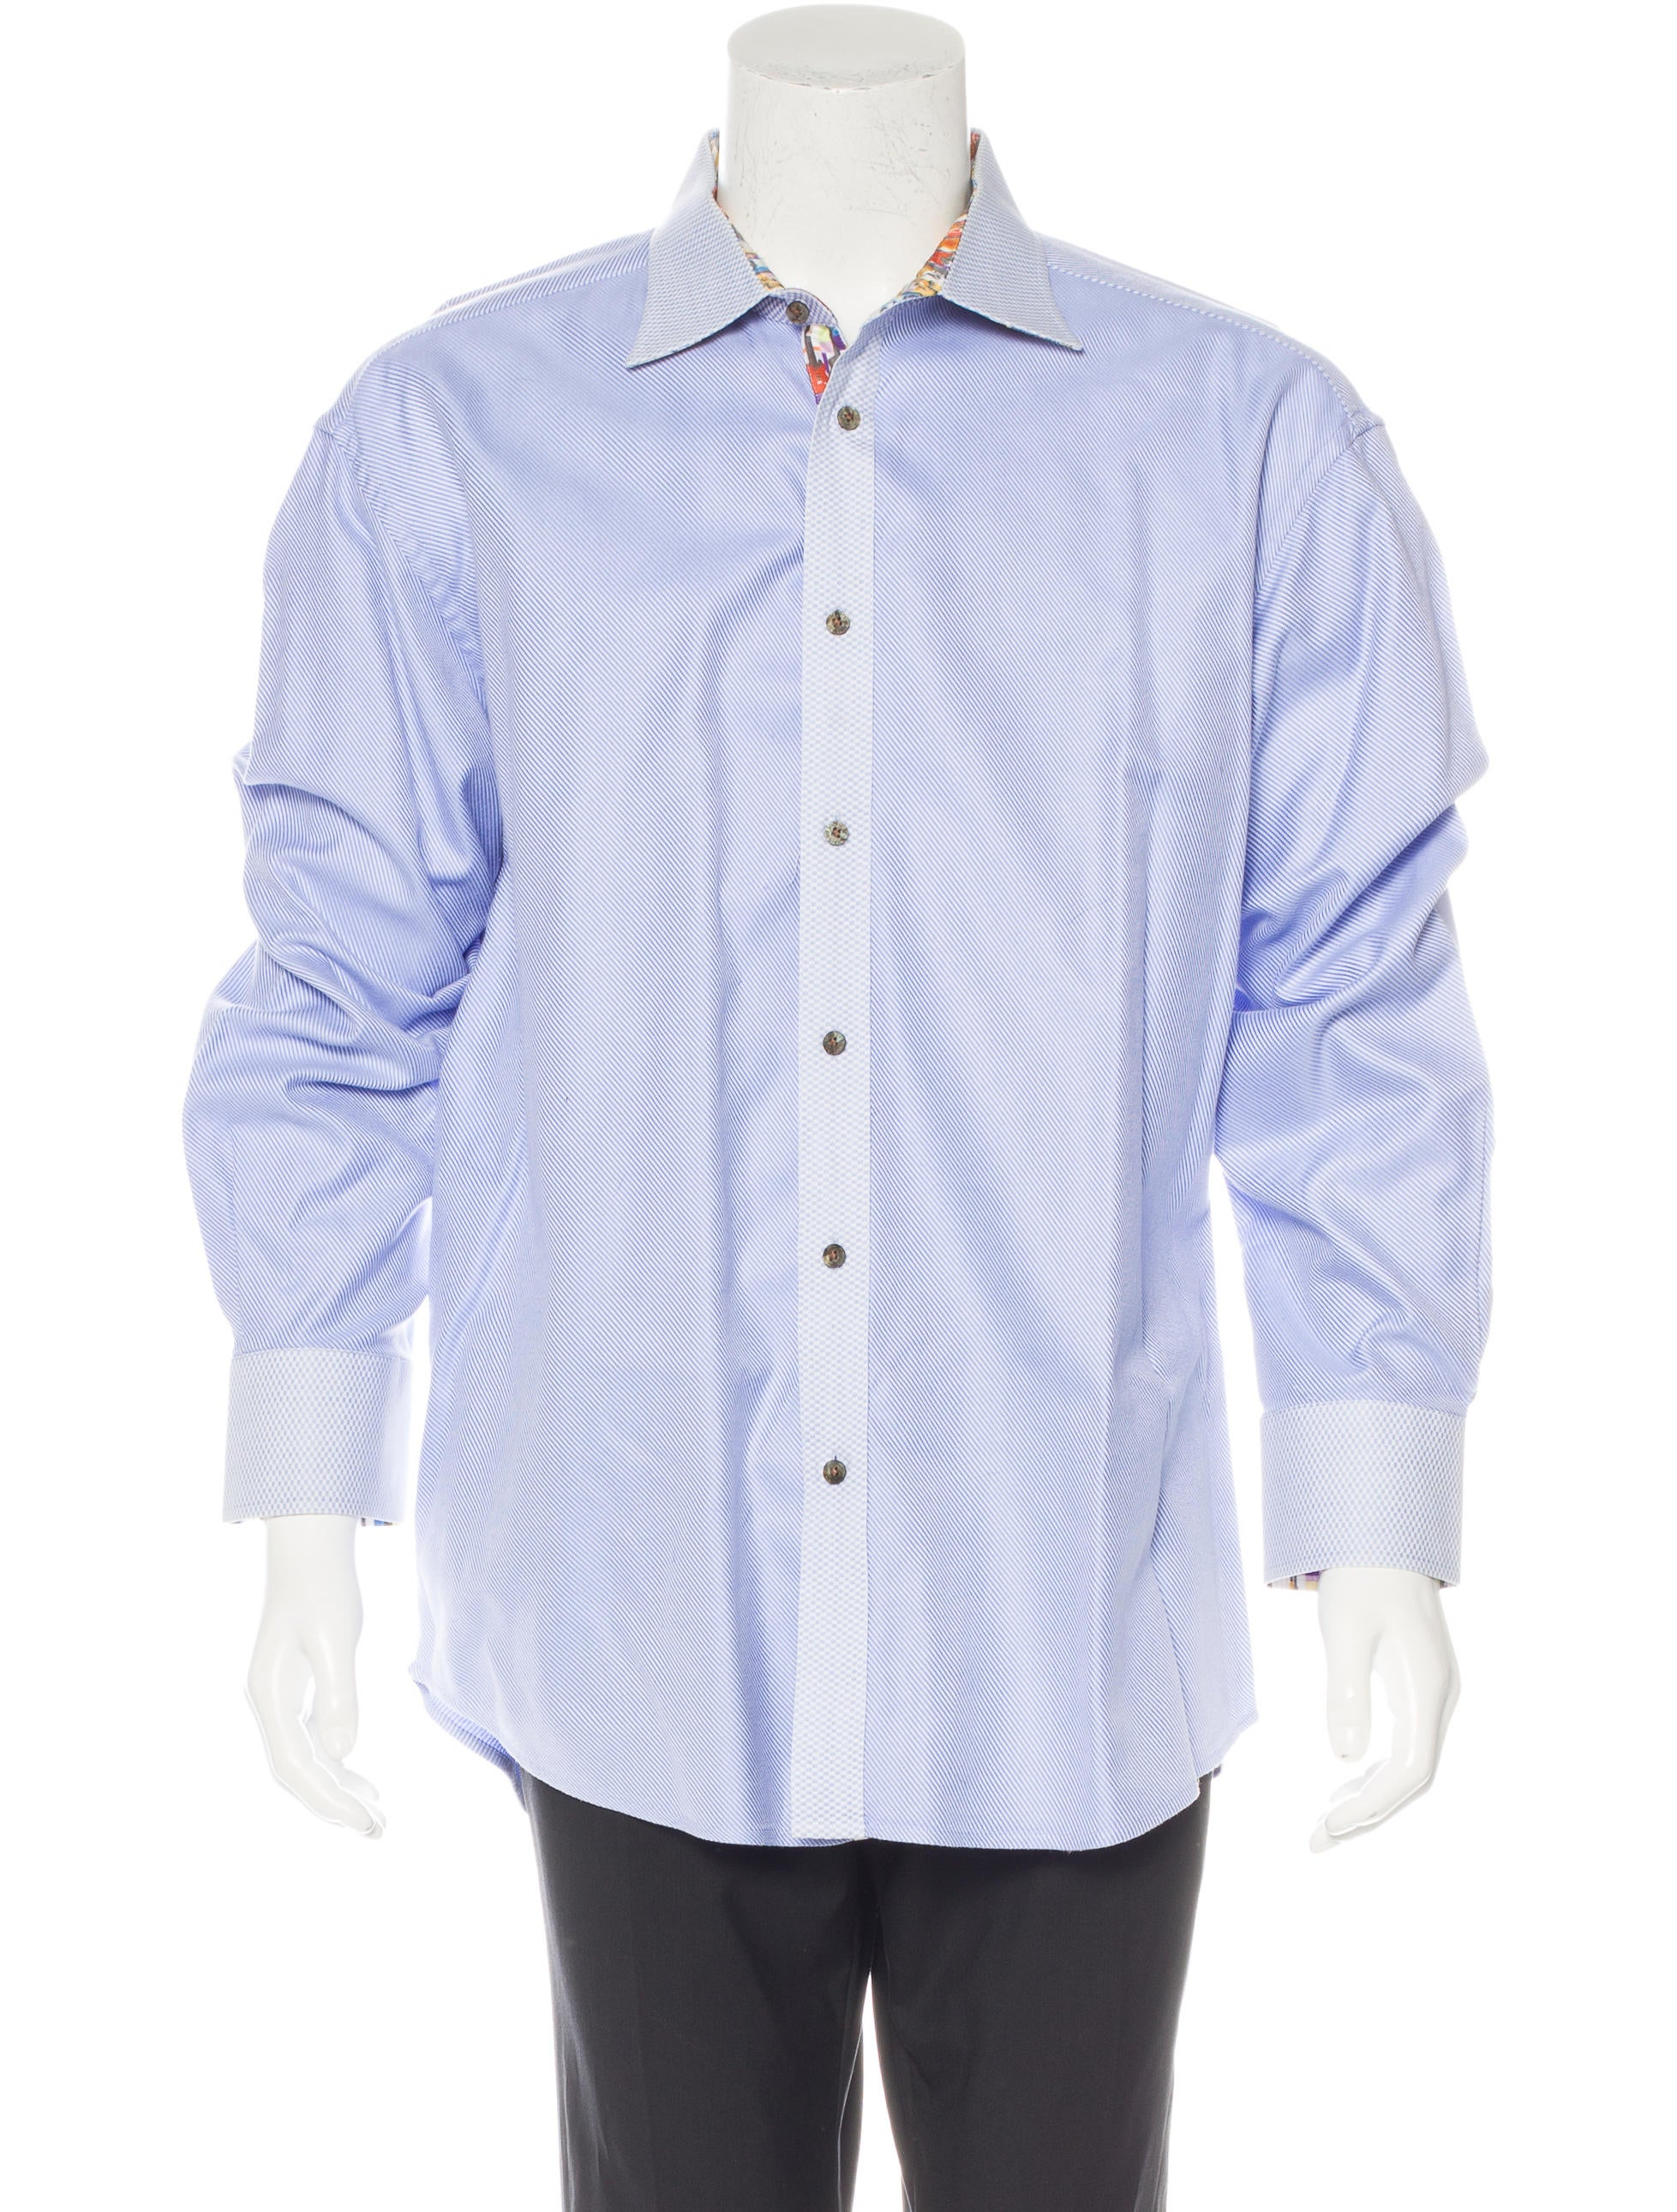 Robert graham striped woven shirt clothing wrobg20824 for Where are robert graham shirts made